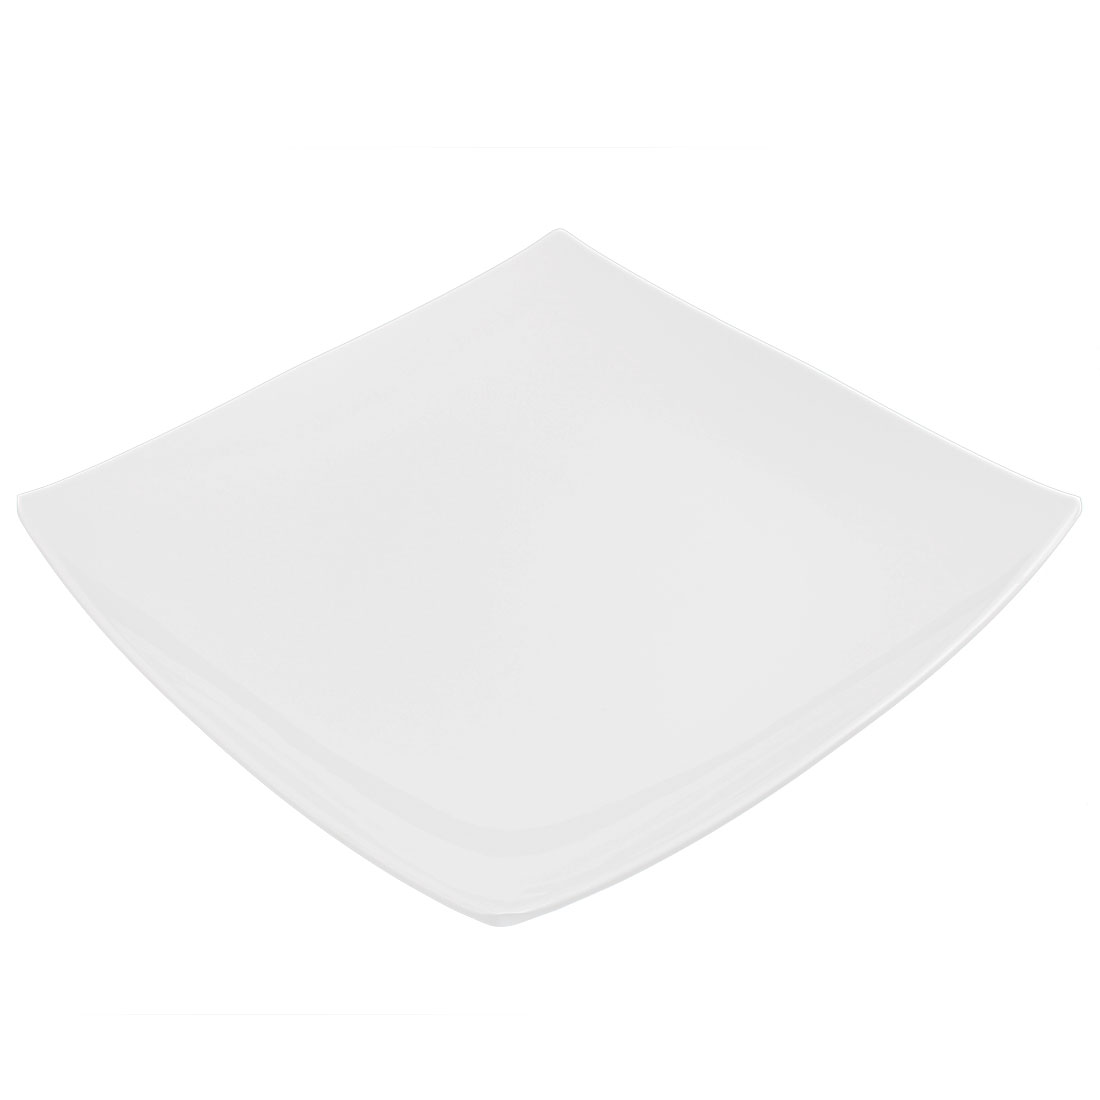 Restaurant Plastic Square Shaped Steak Fast Food Dish Plate